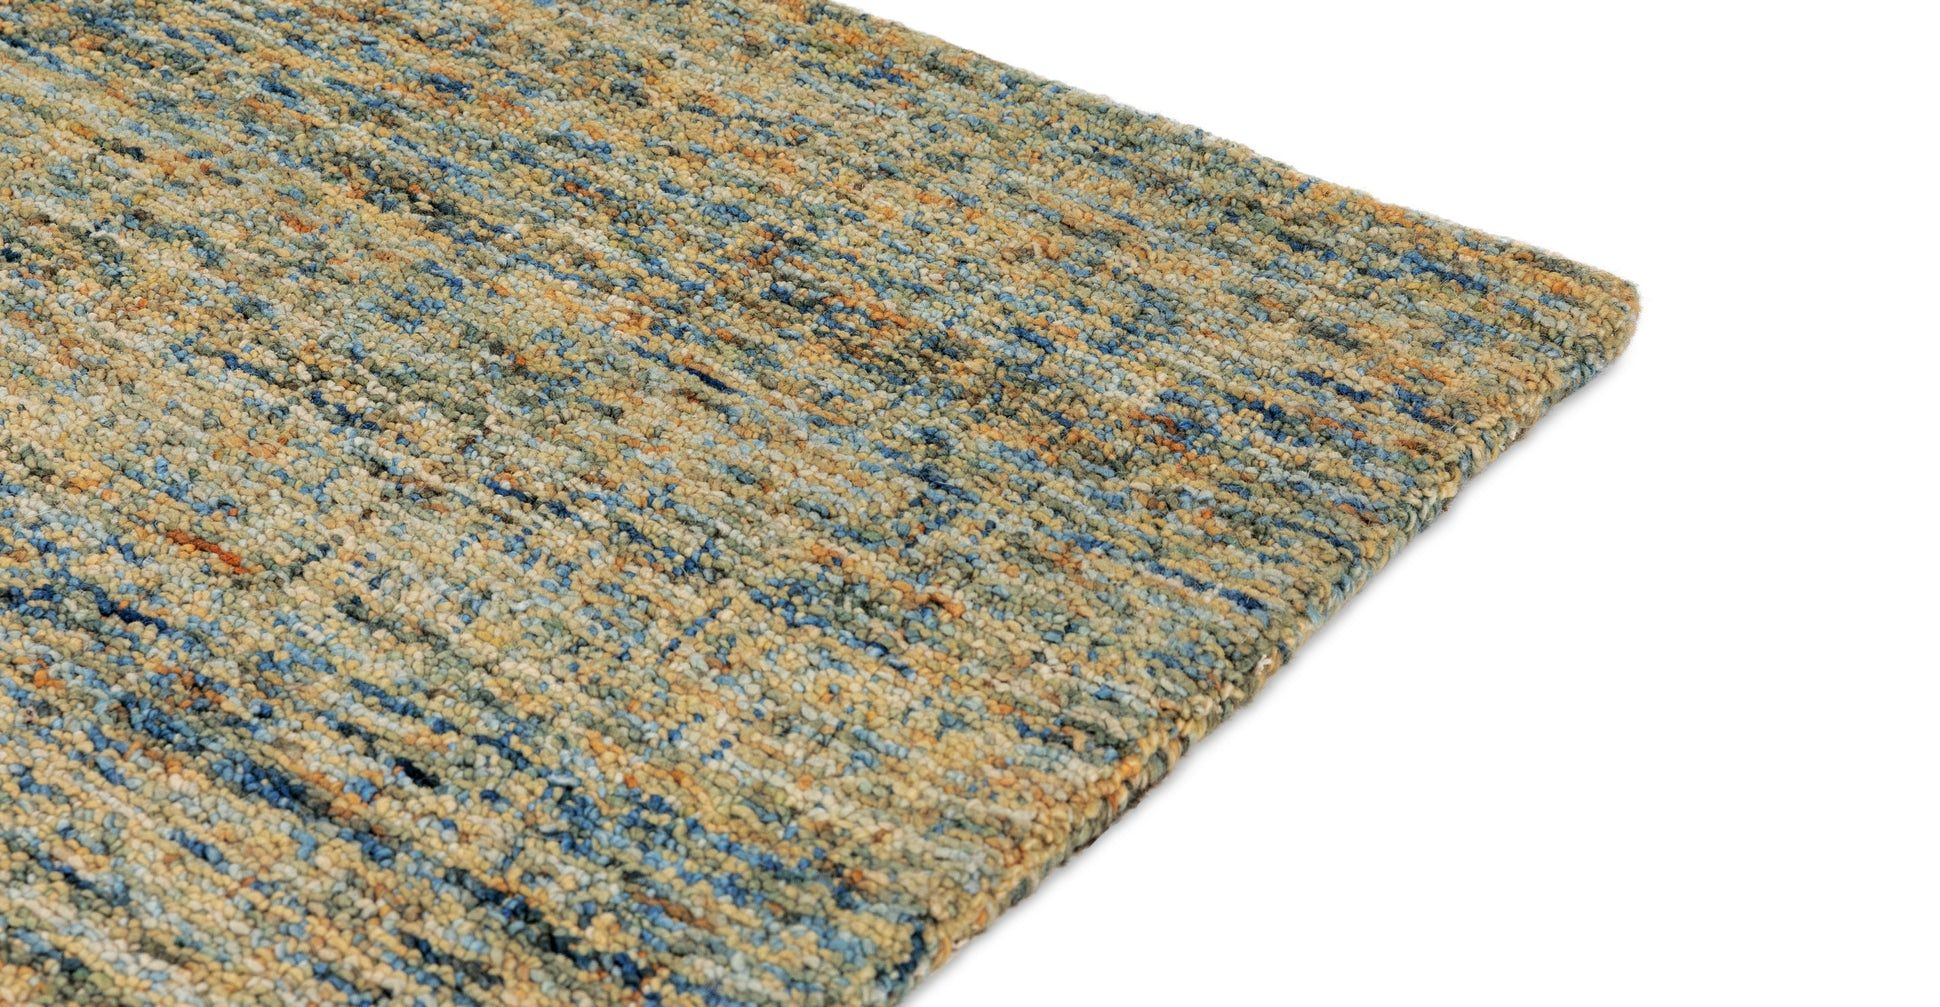 Loopi Pebble Sand Rug 8 X 10 Rugs Handcrafted Rugs Hand Tufted Rugs